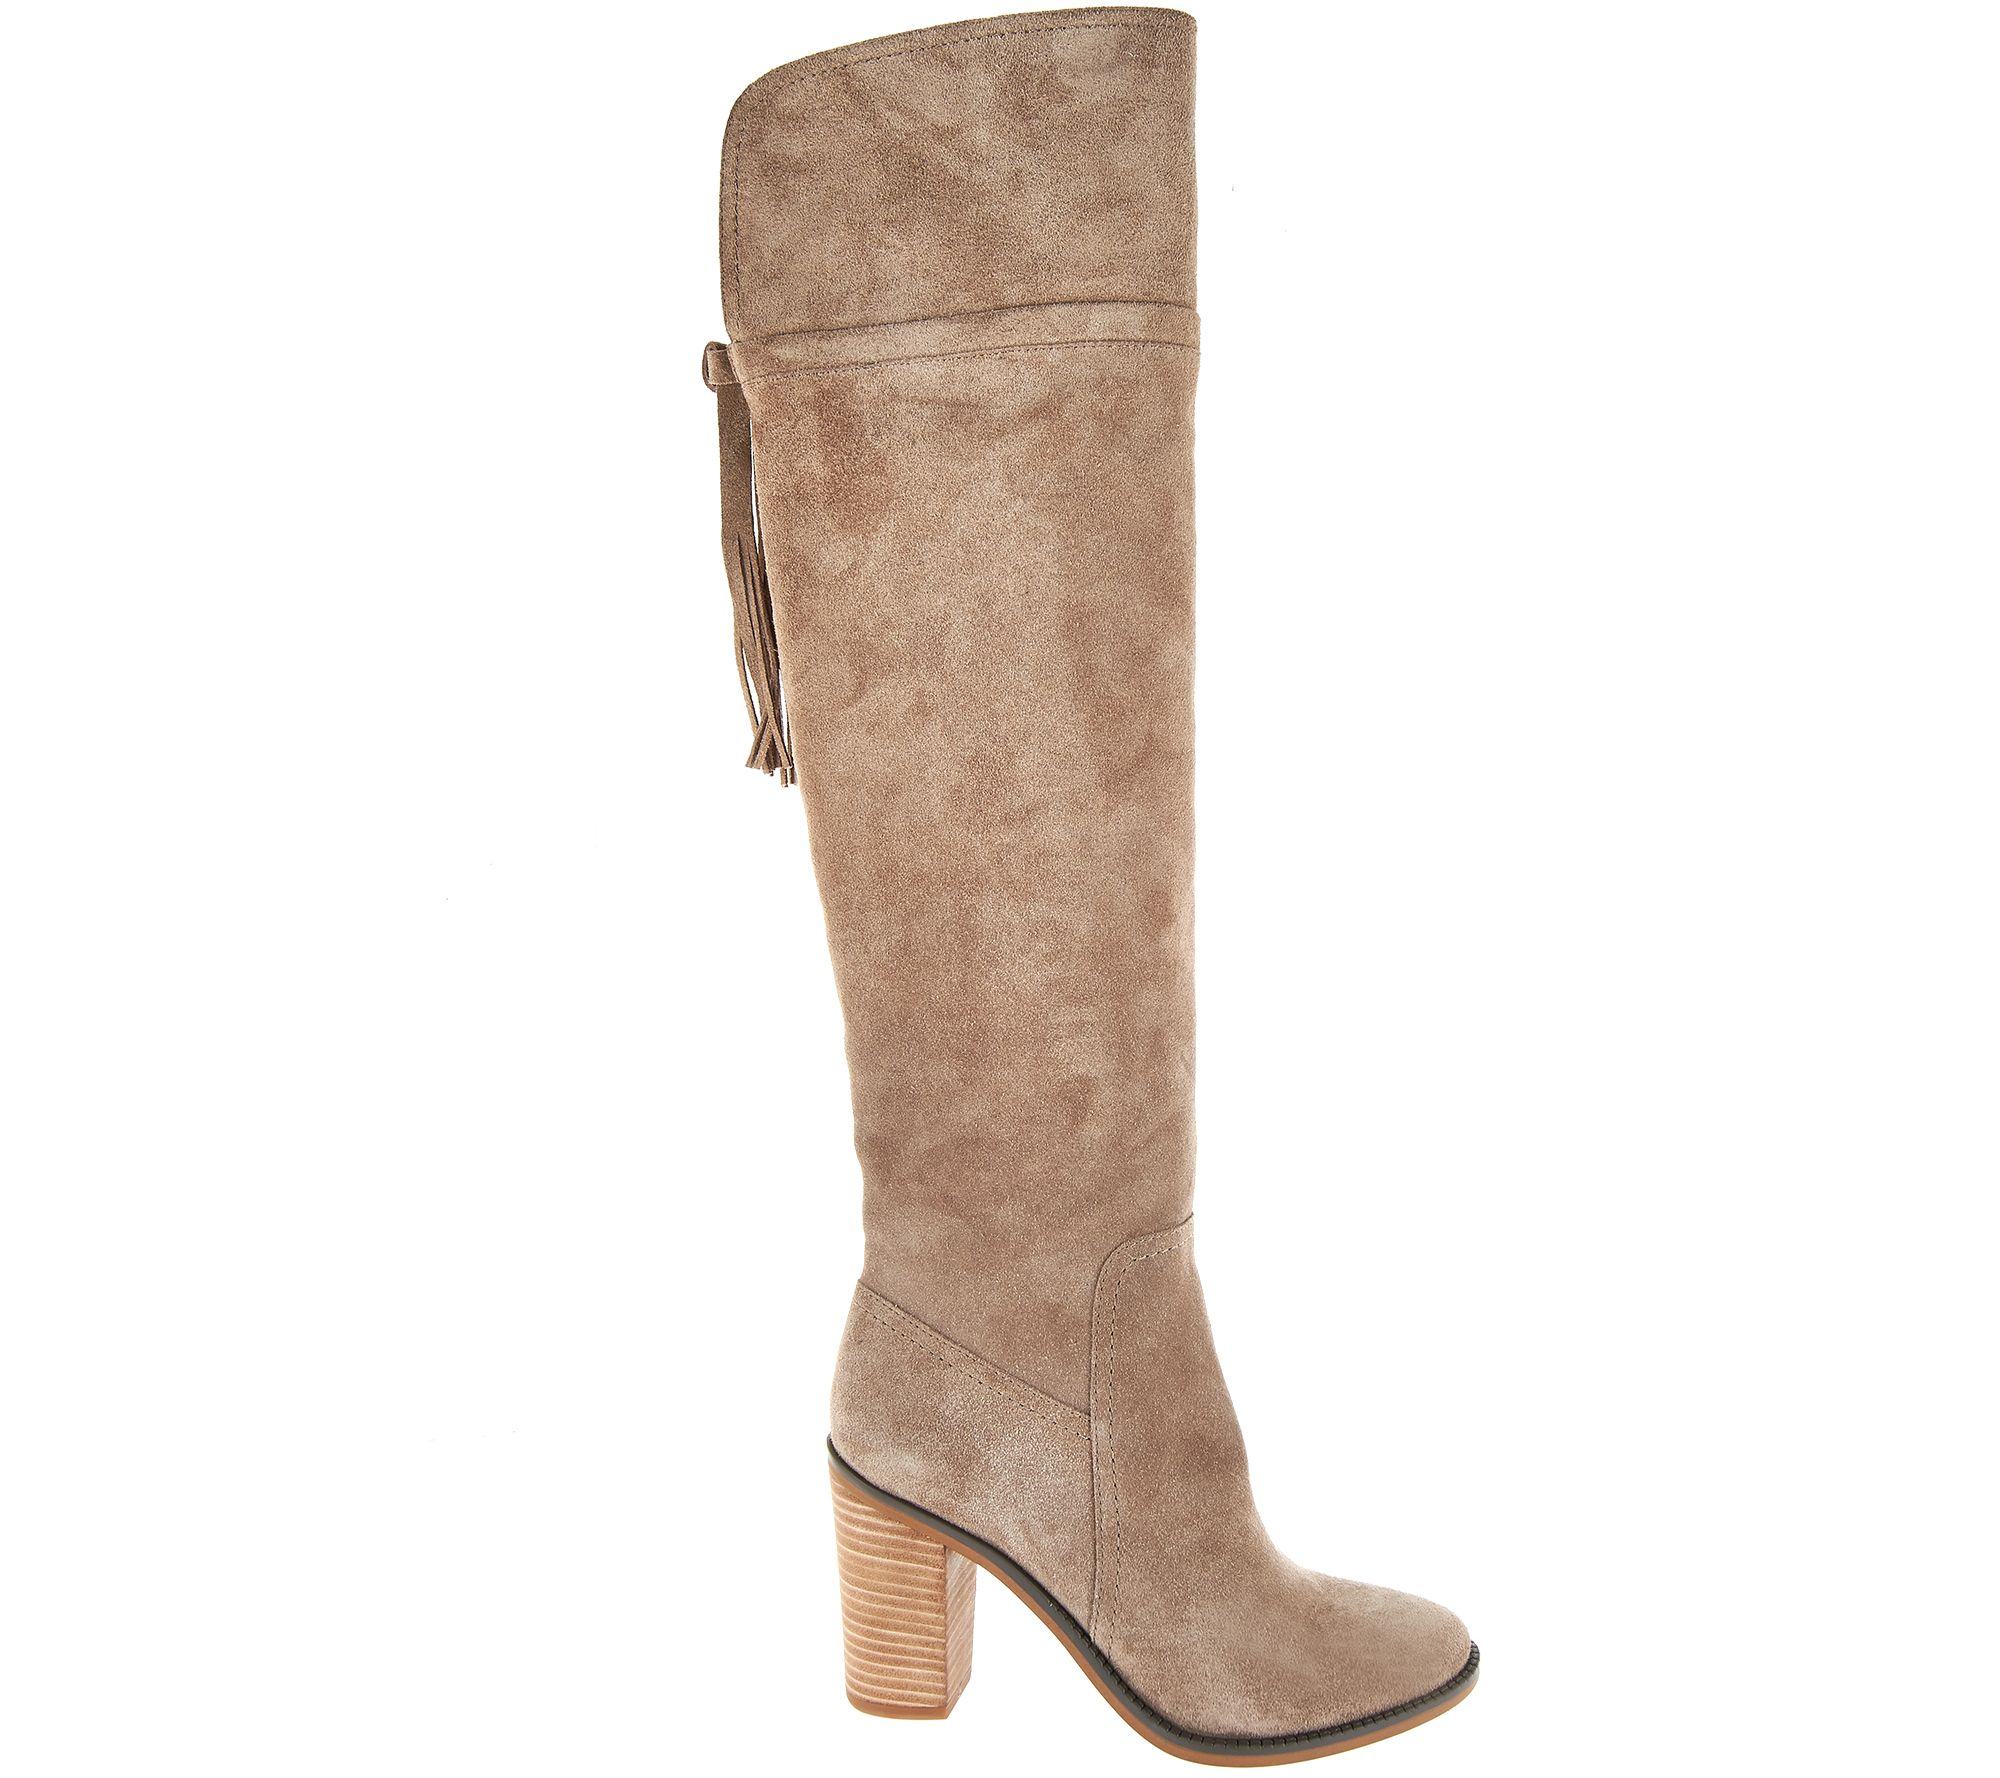 3c62ab6b9f3 Franco Sarto Over the Knee Suede Boots with Tassel - Eckhart - Page 1 —  QVC.com